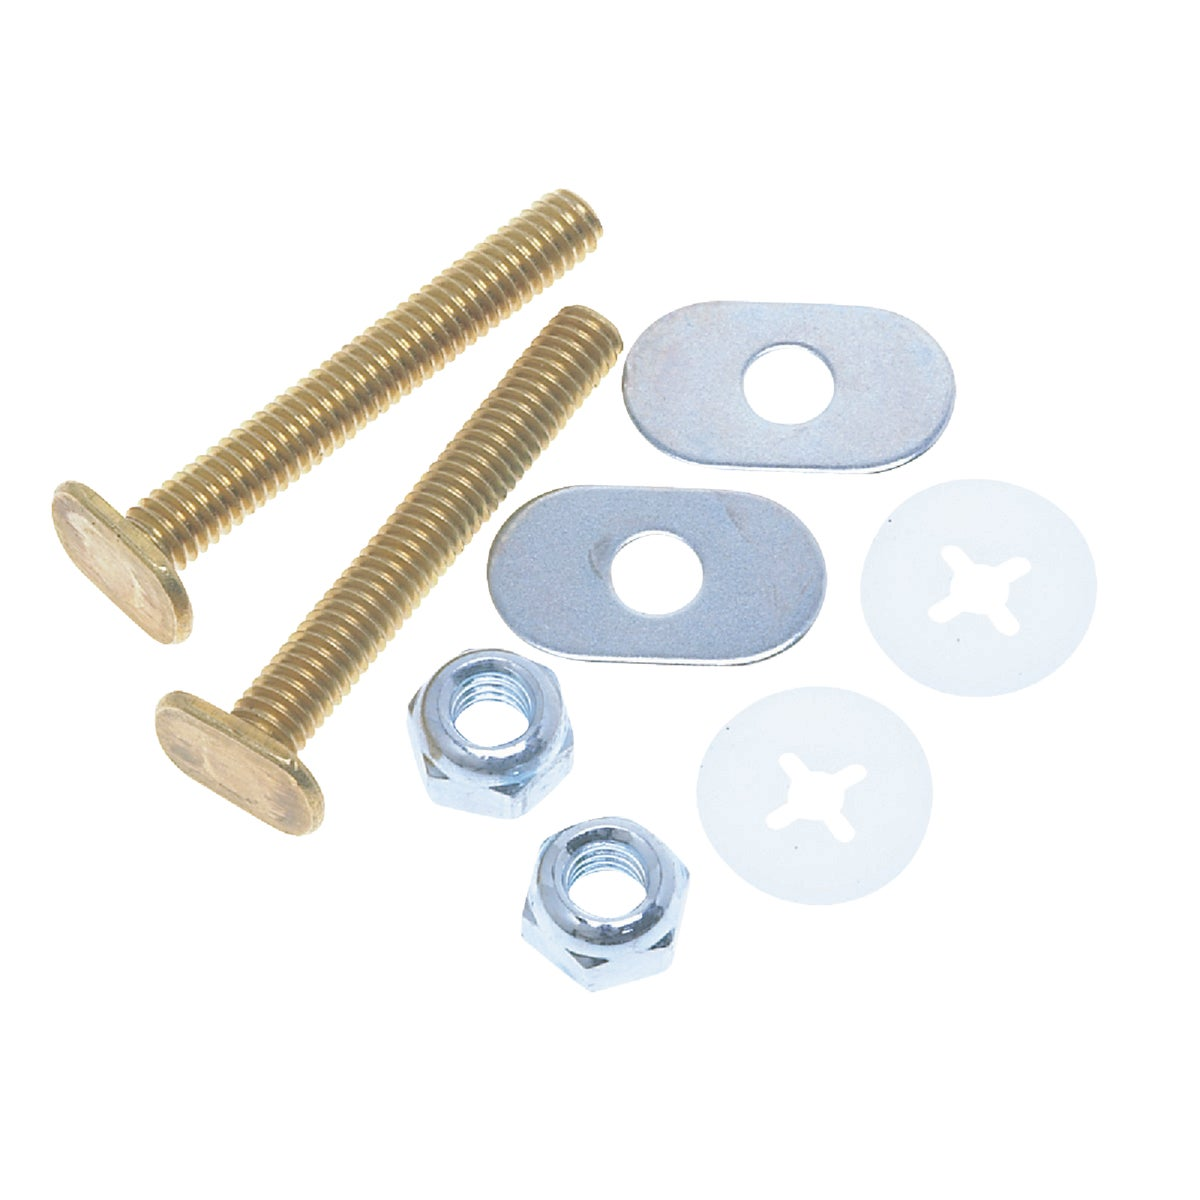 "1/4"" TOILET BOLT SET - 443972 by Do it Best"